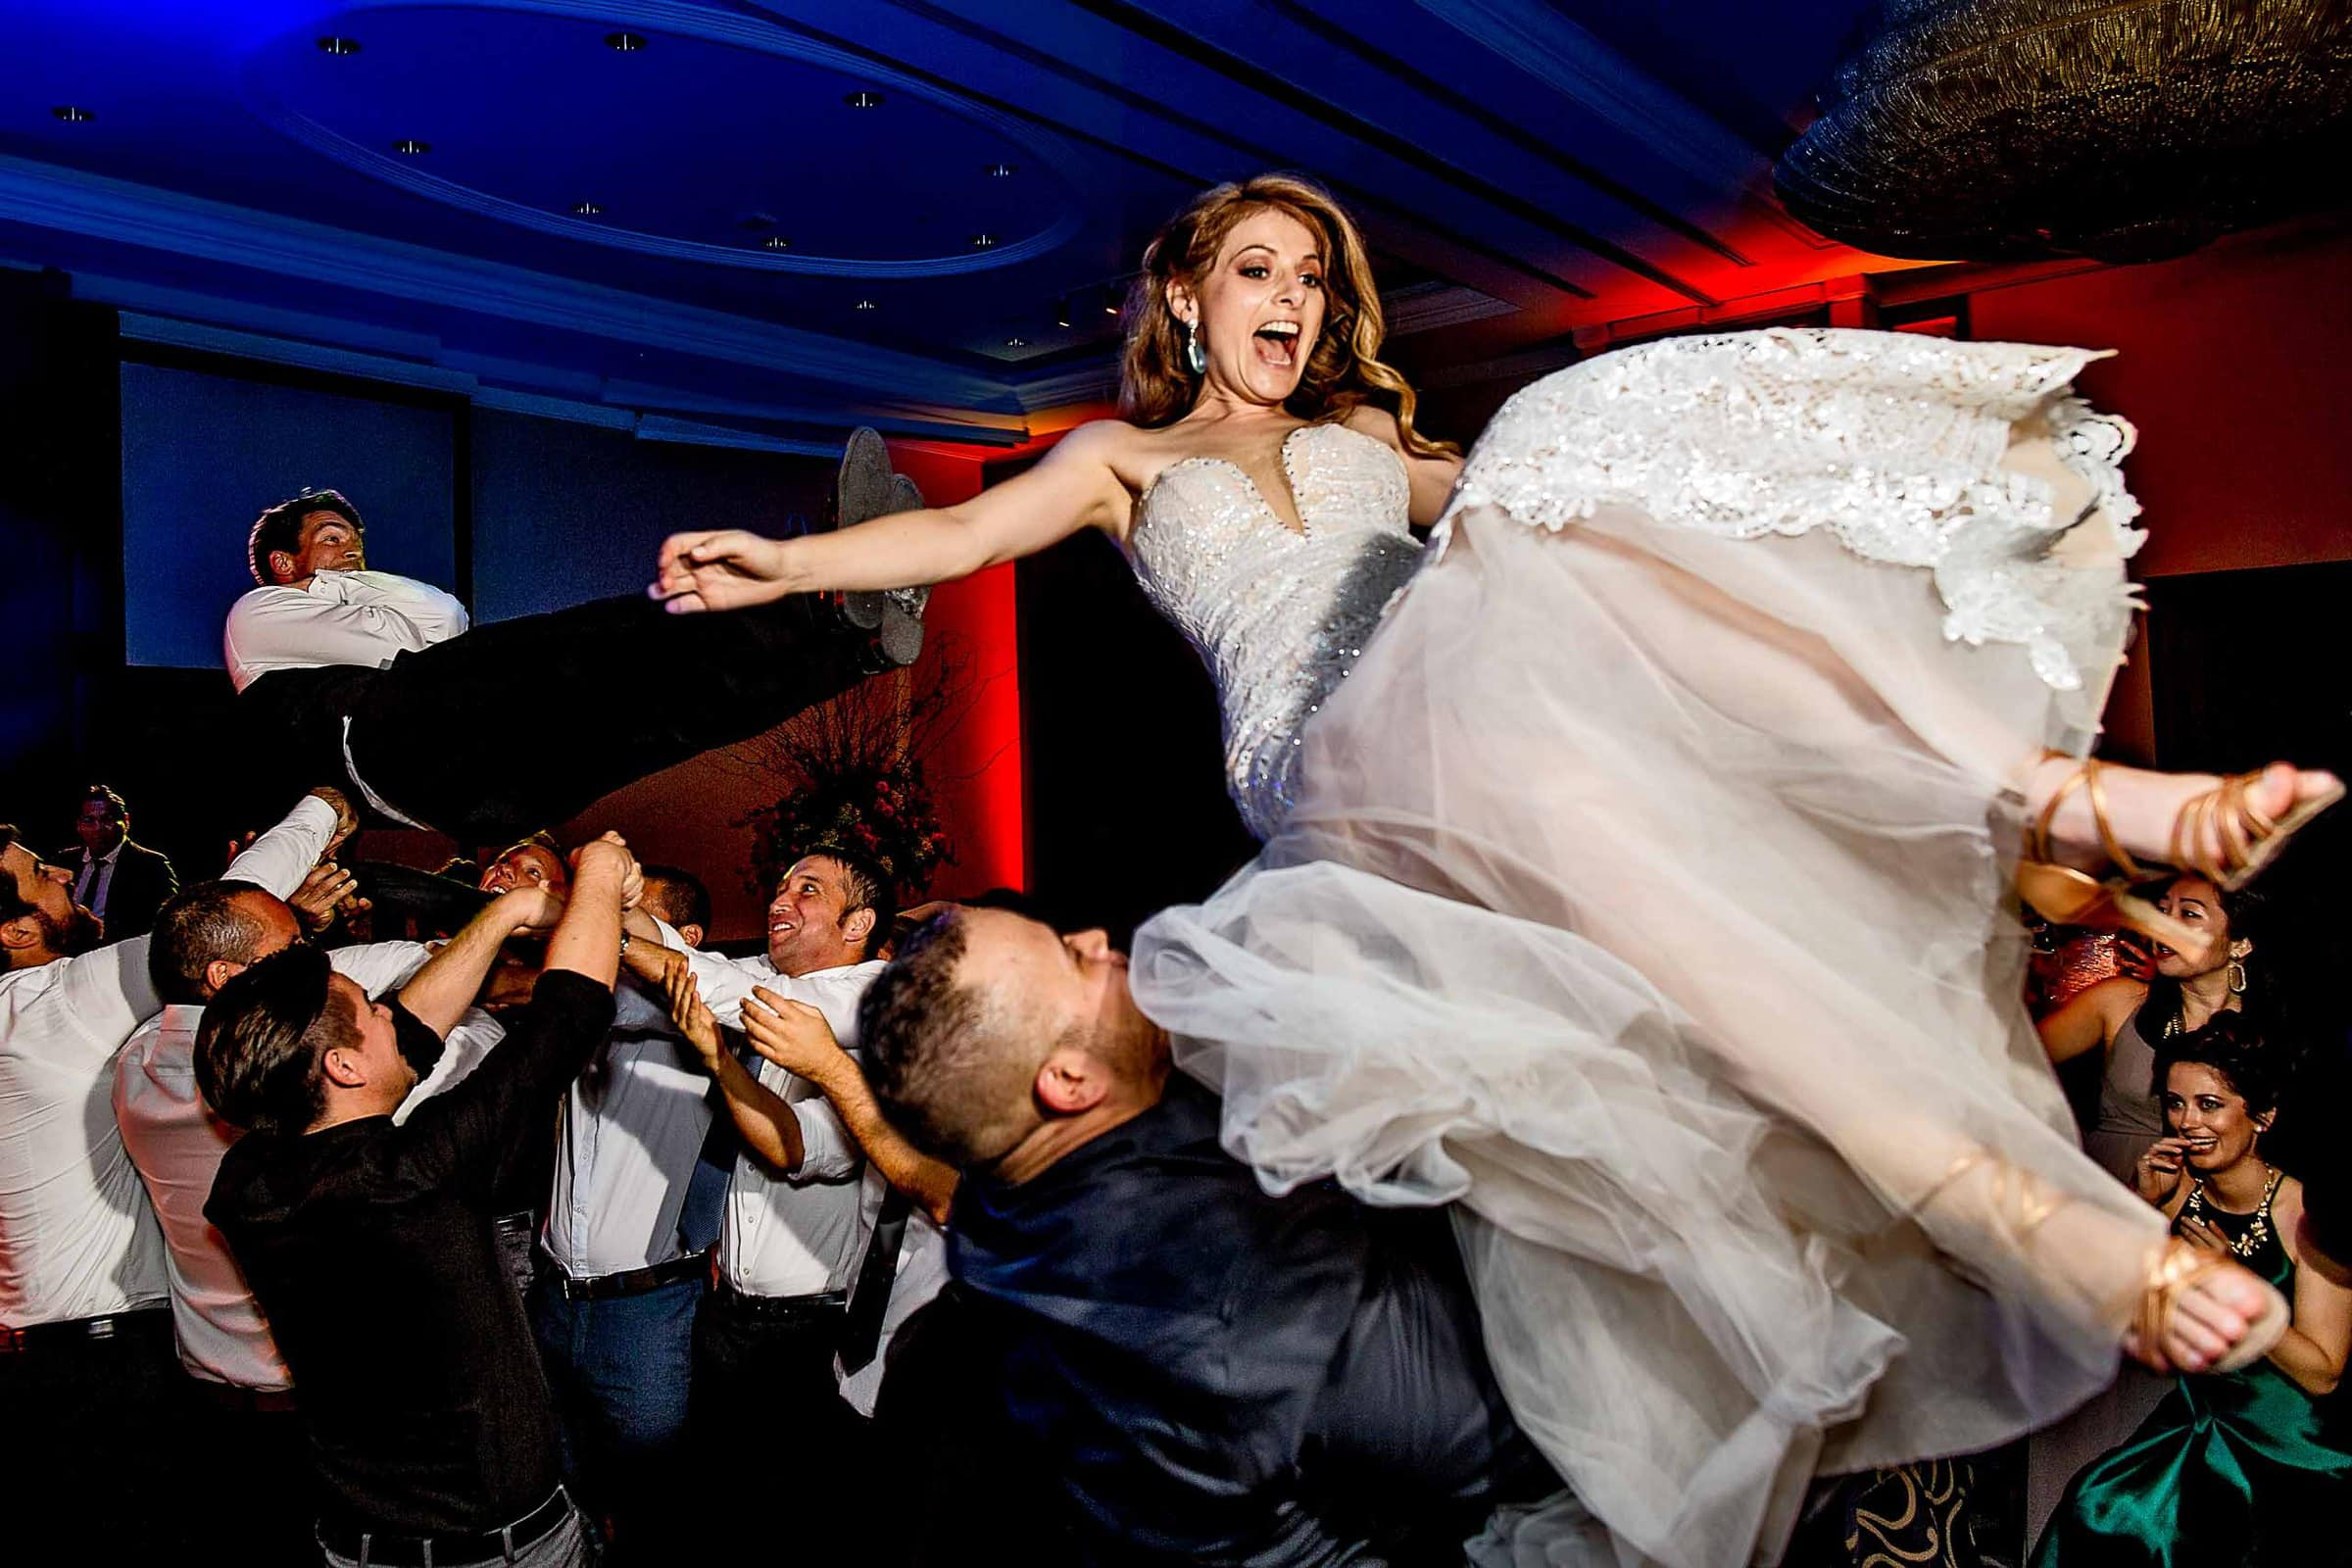 Bride and groom being thrown above friends on the dance floor during their Lima Peru wedding